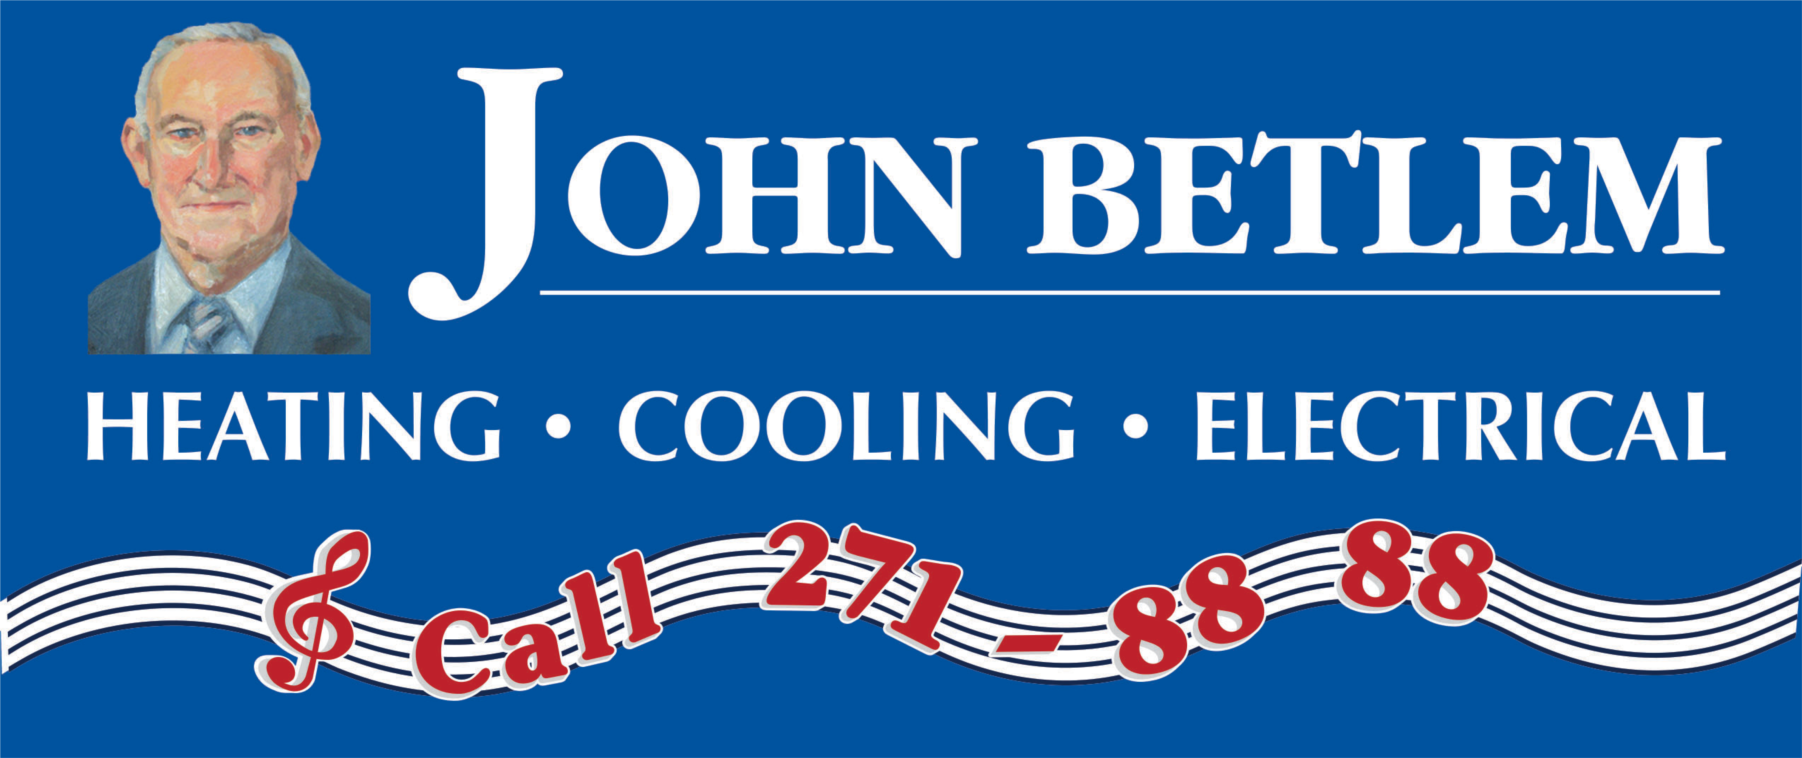 John Betlem Heating & Cooling, Inc Company Logo